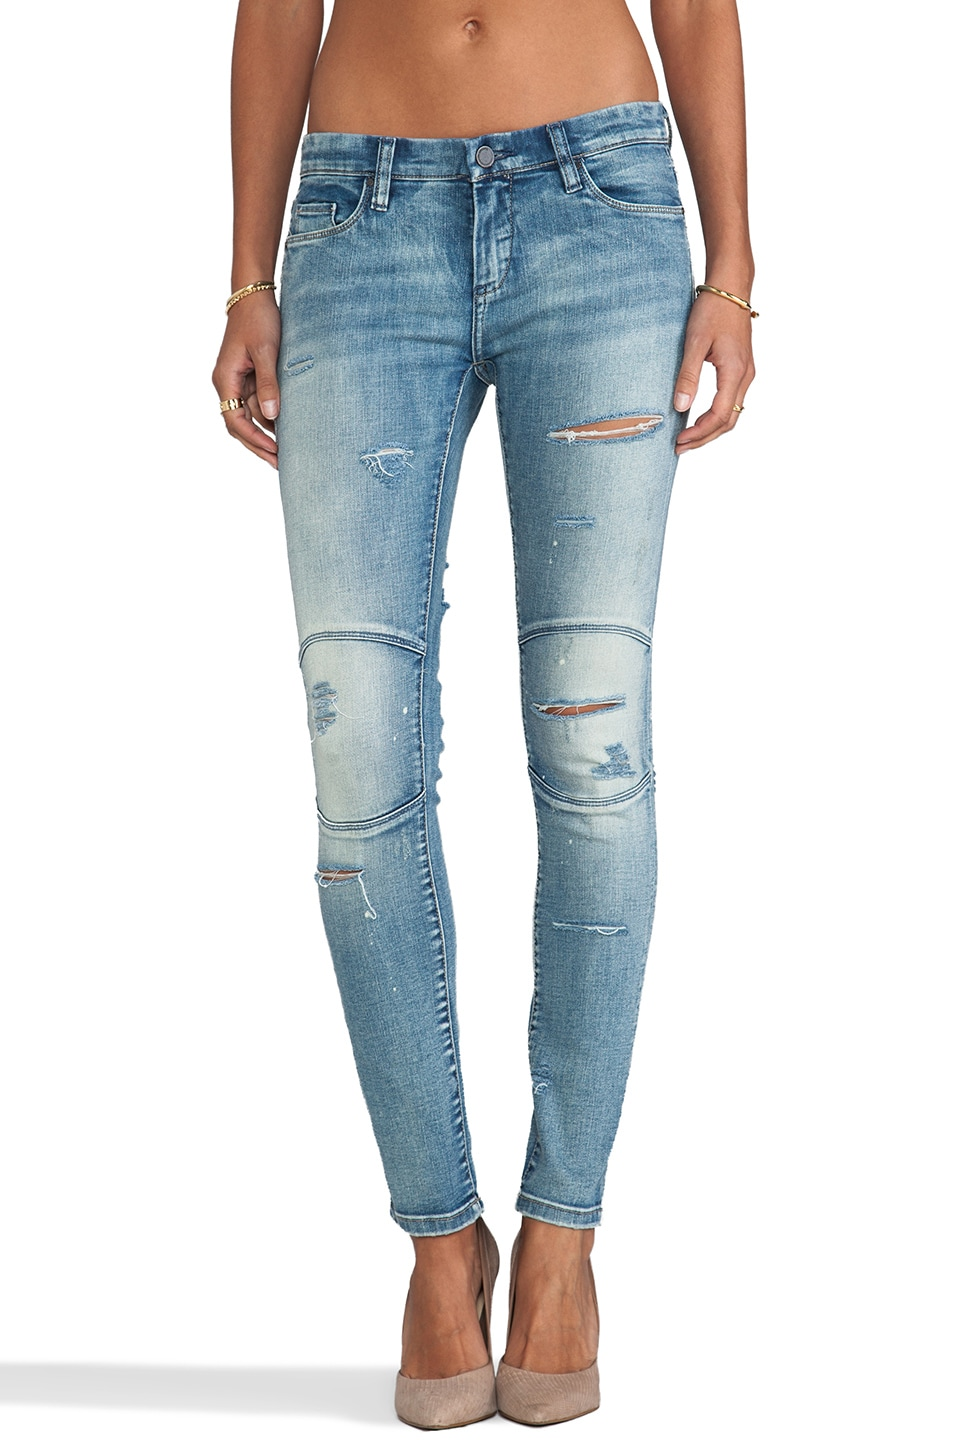 BLANKNYC Distressed Jean in Bees Knees